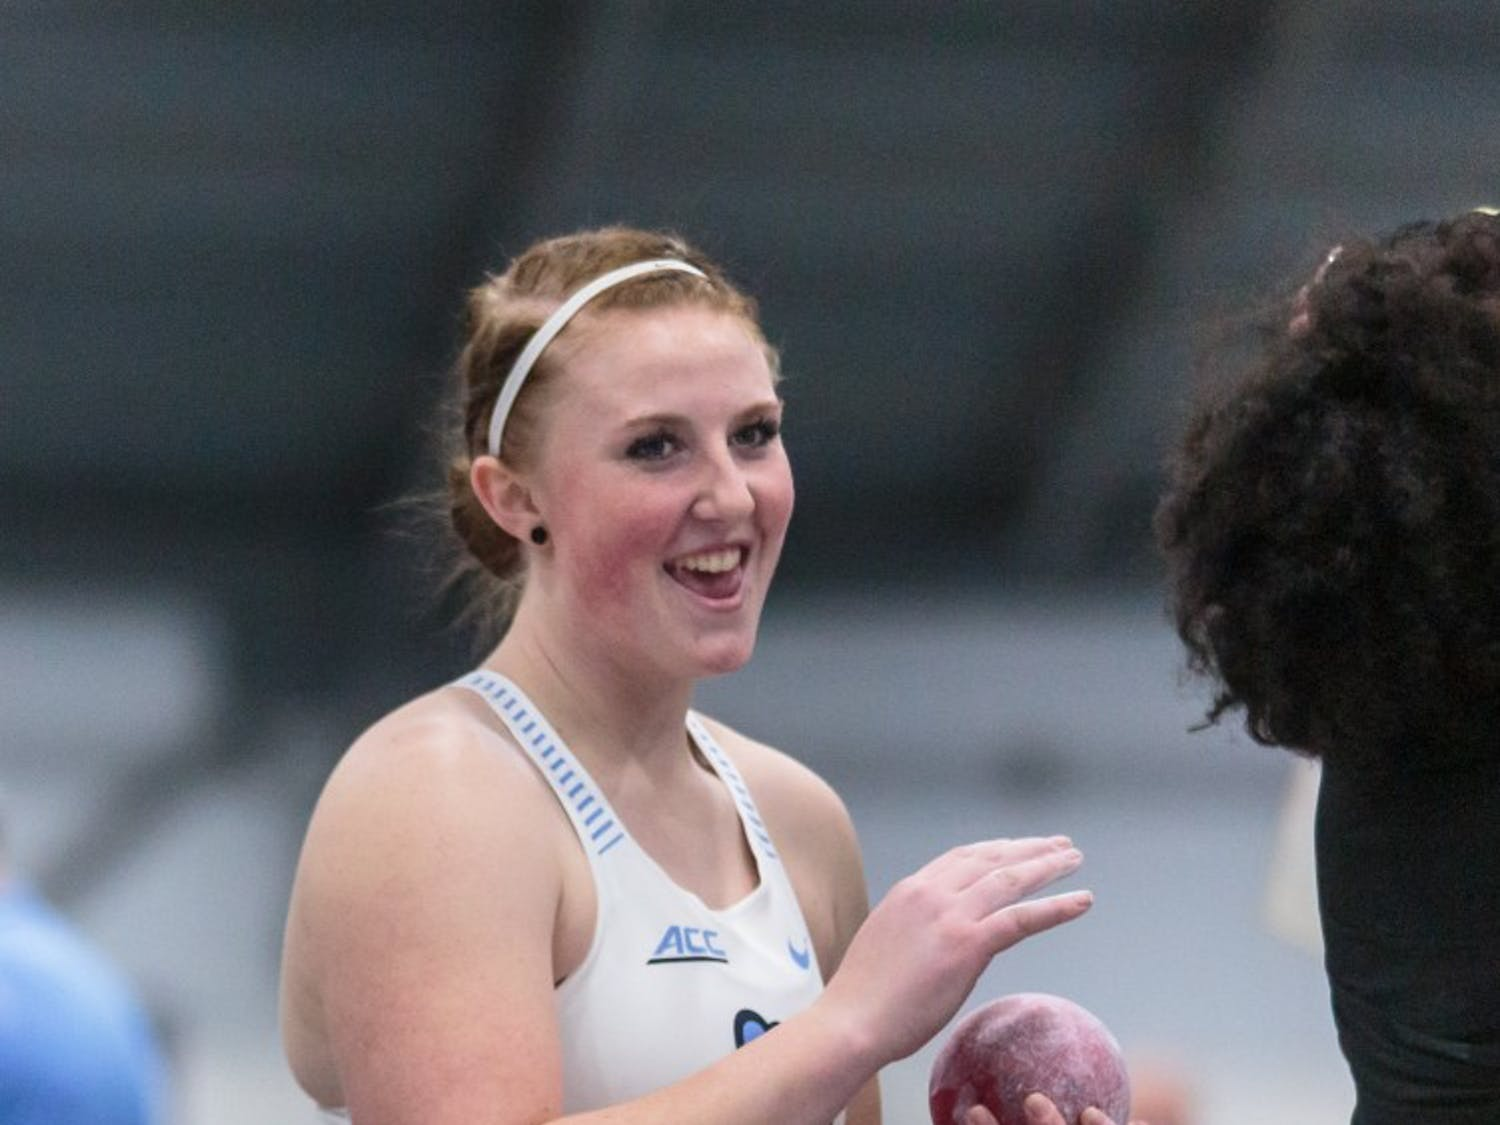 First-year Emily Malone prepares to compete in the shot-put event at the Dick Taylor Carolina Cup in the Eddie Smith Field House on Saturday, Jan. 12 2019.